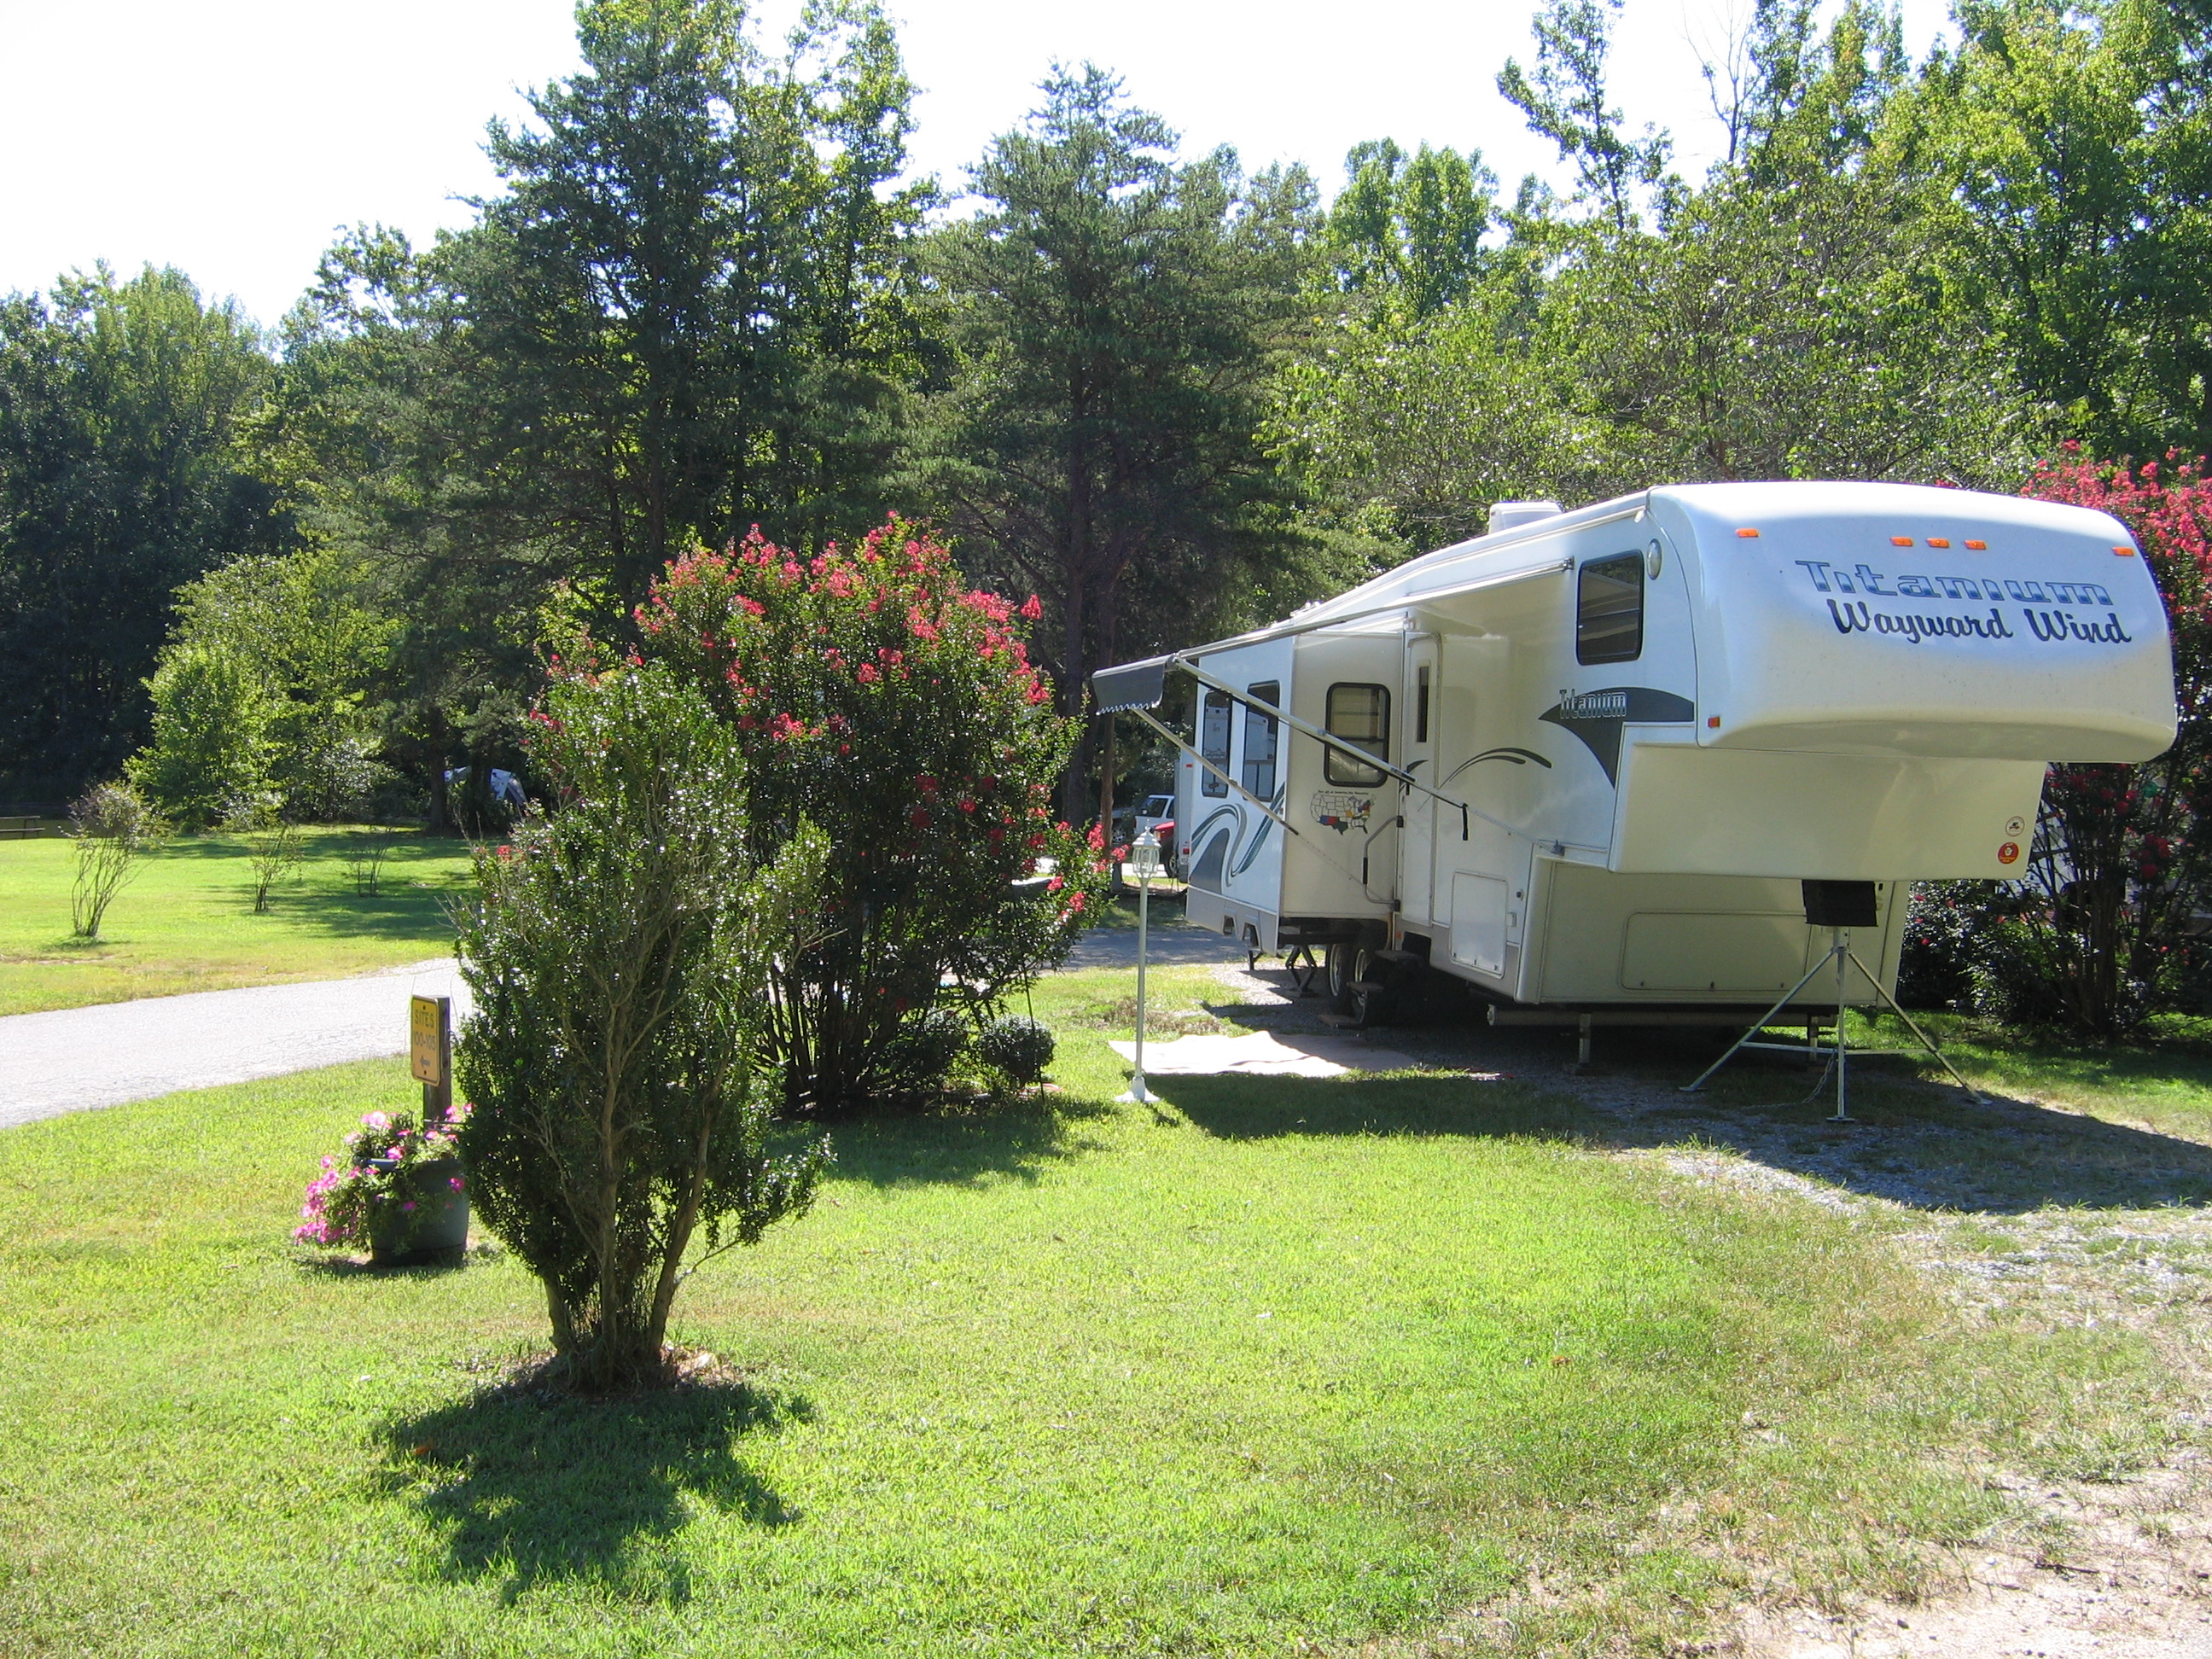 West Virginia has an incredible selection of campgrounds for all types of travelers.